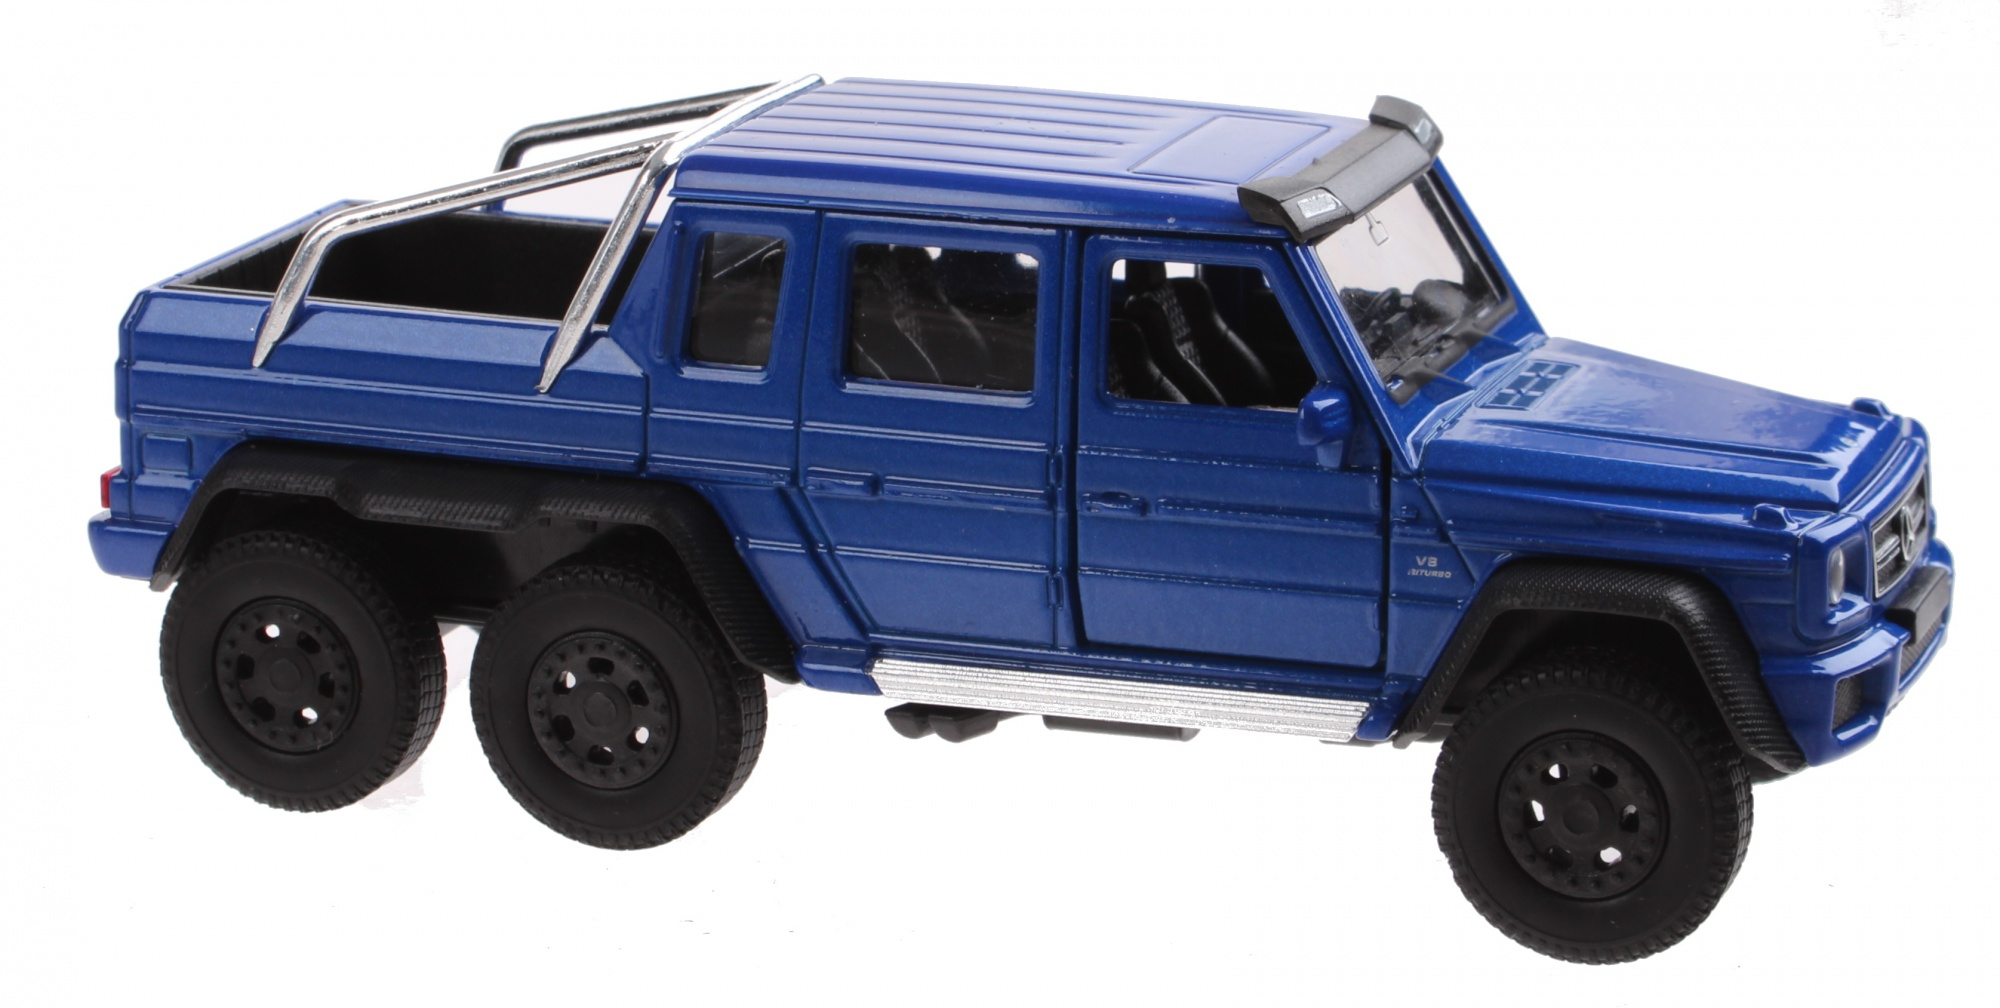 G63 Amg 6X6 >> Scale Model Mercedes Benz G63 Amg 6x6 Blue 13 Cm